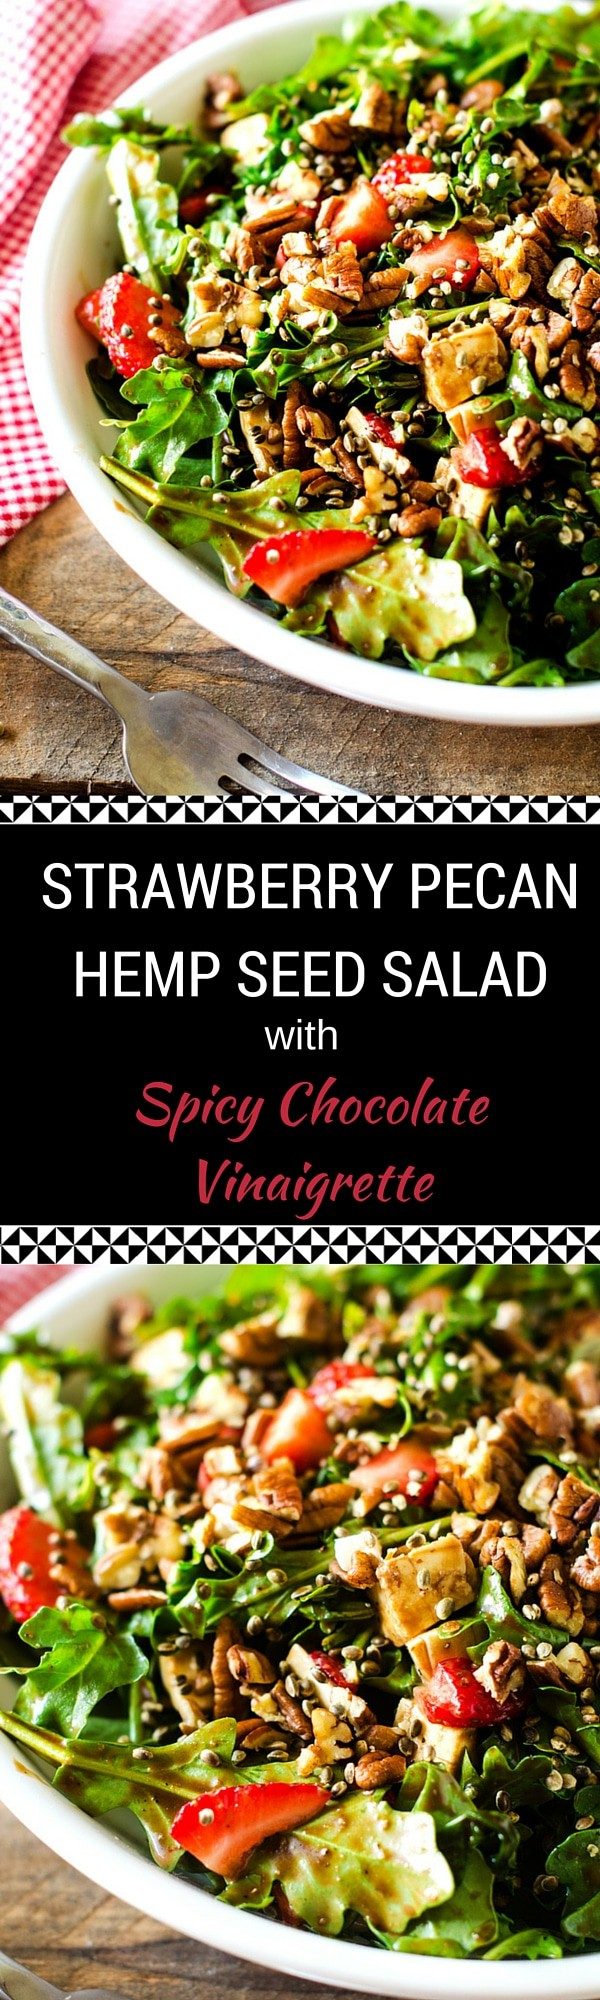 Strawberry Pecan Hemp Seed Salad with Spicy Chocolate Vinaigrette - WendyPolisi.com